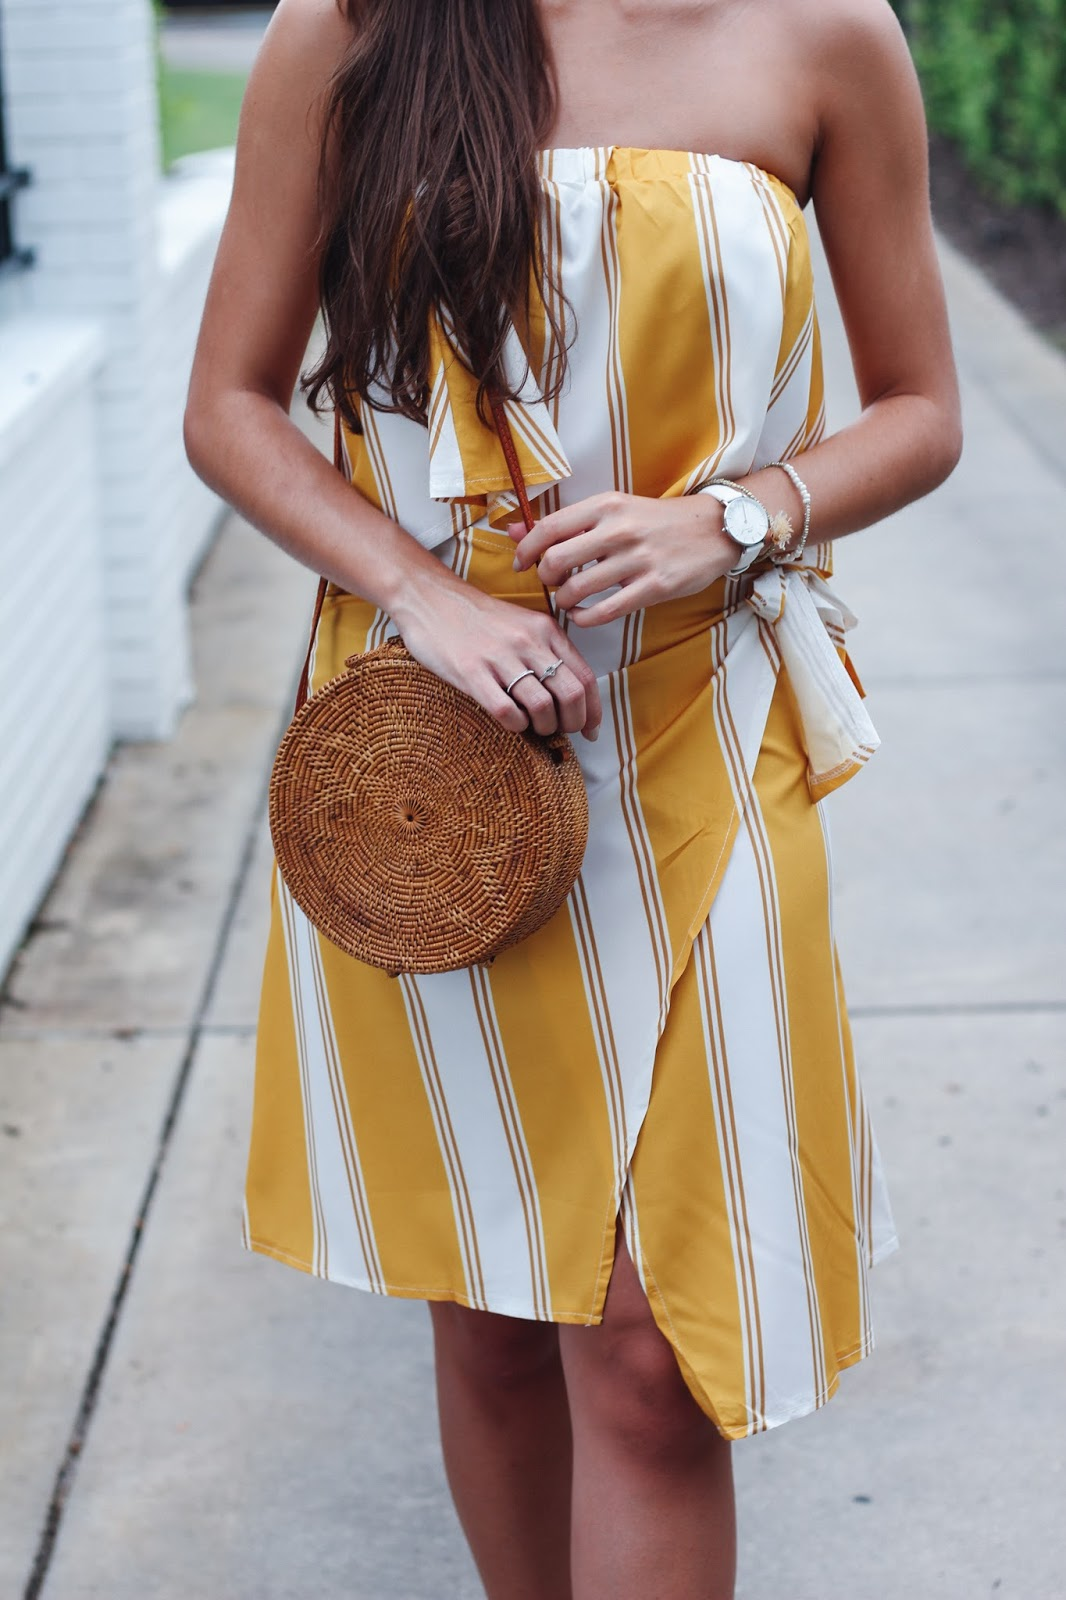 Yellow Fashion Two-Piece for Your Vacation Less Than $20